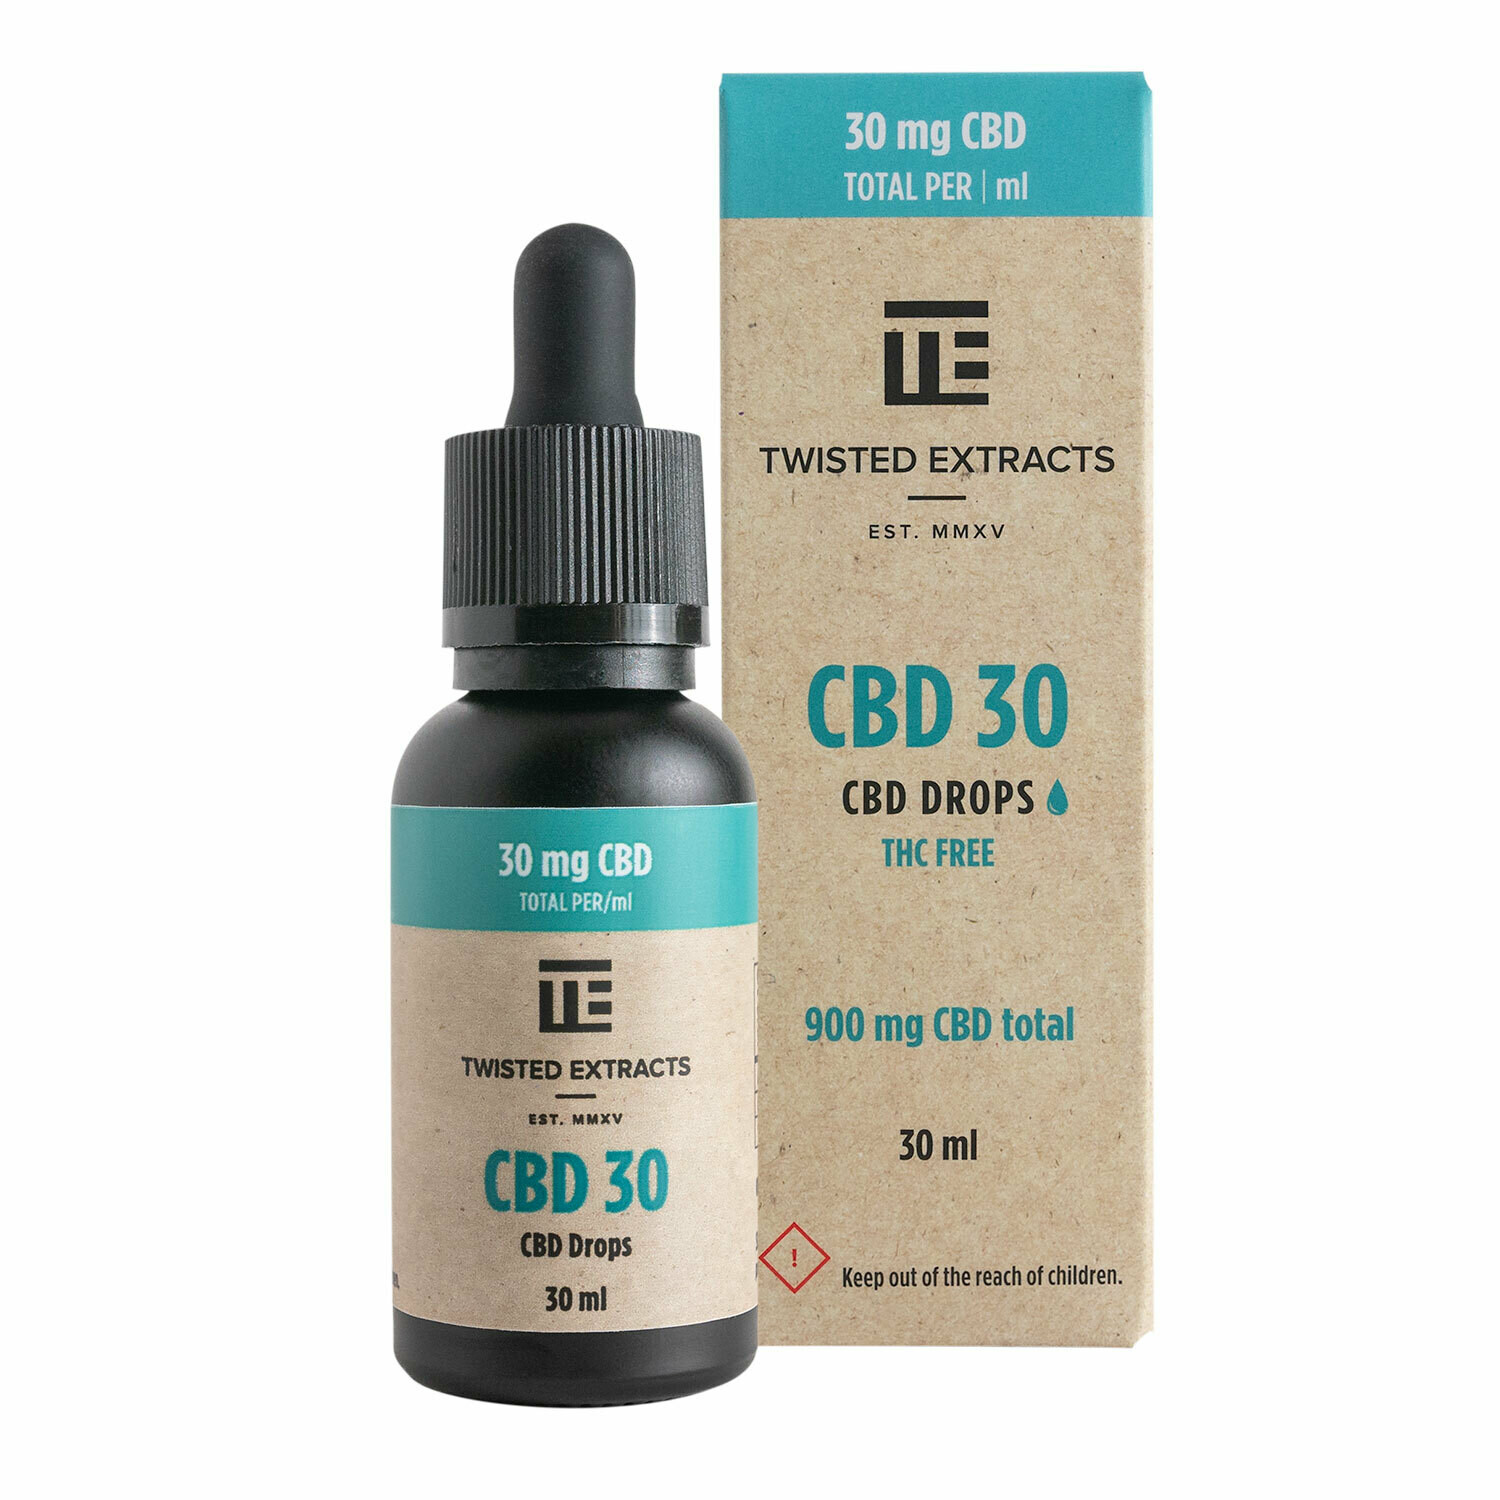 (900mg CBD) CBD 30 Oil Drops By Twisted Extracts